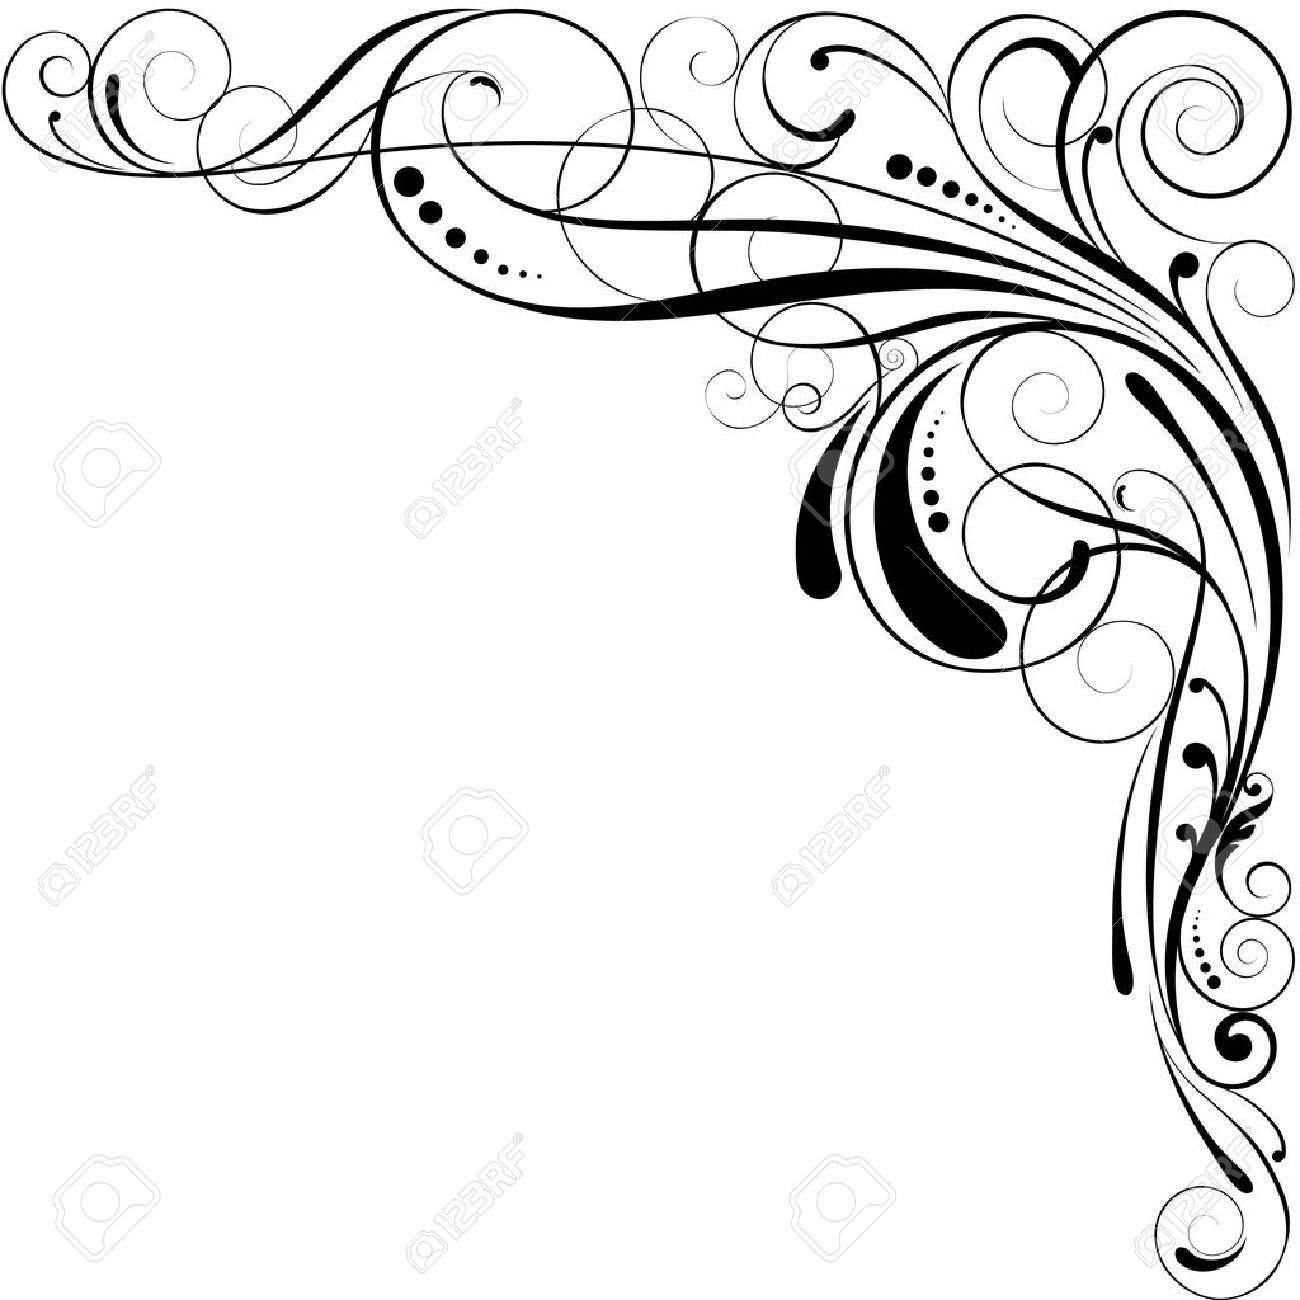 1300x1300 Simple Line Designs Swirls. Vector Victorian Ornamental Swirls